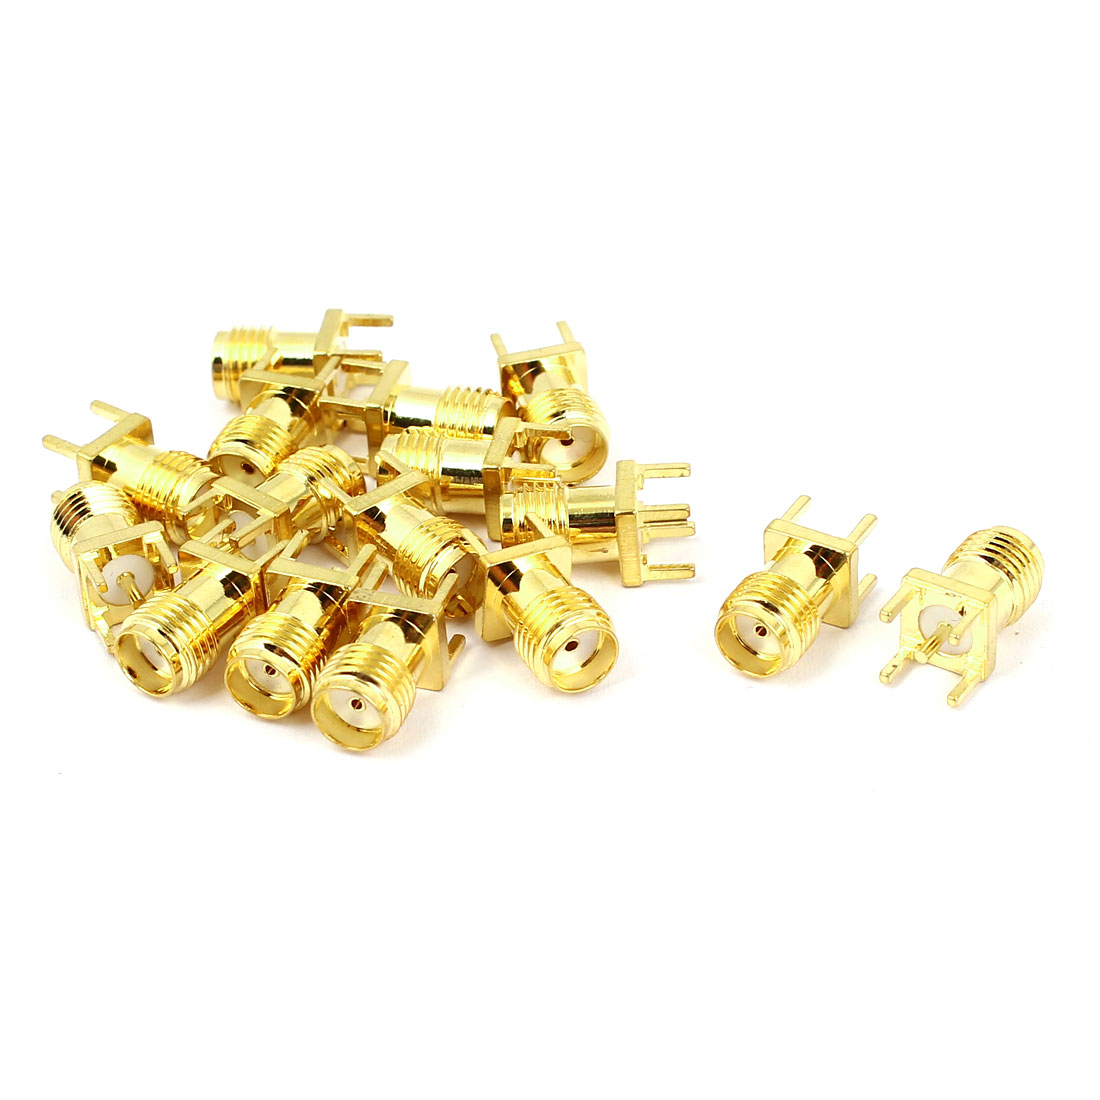 15pcs Gold Tone RP SMA Male Jack Solder PCB Clip Edge Mount RF Adapter Connector